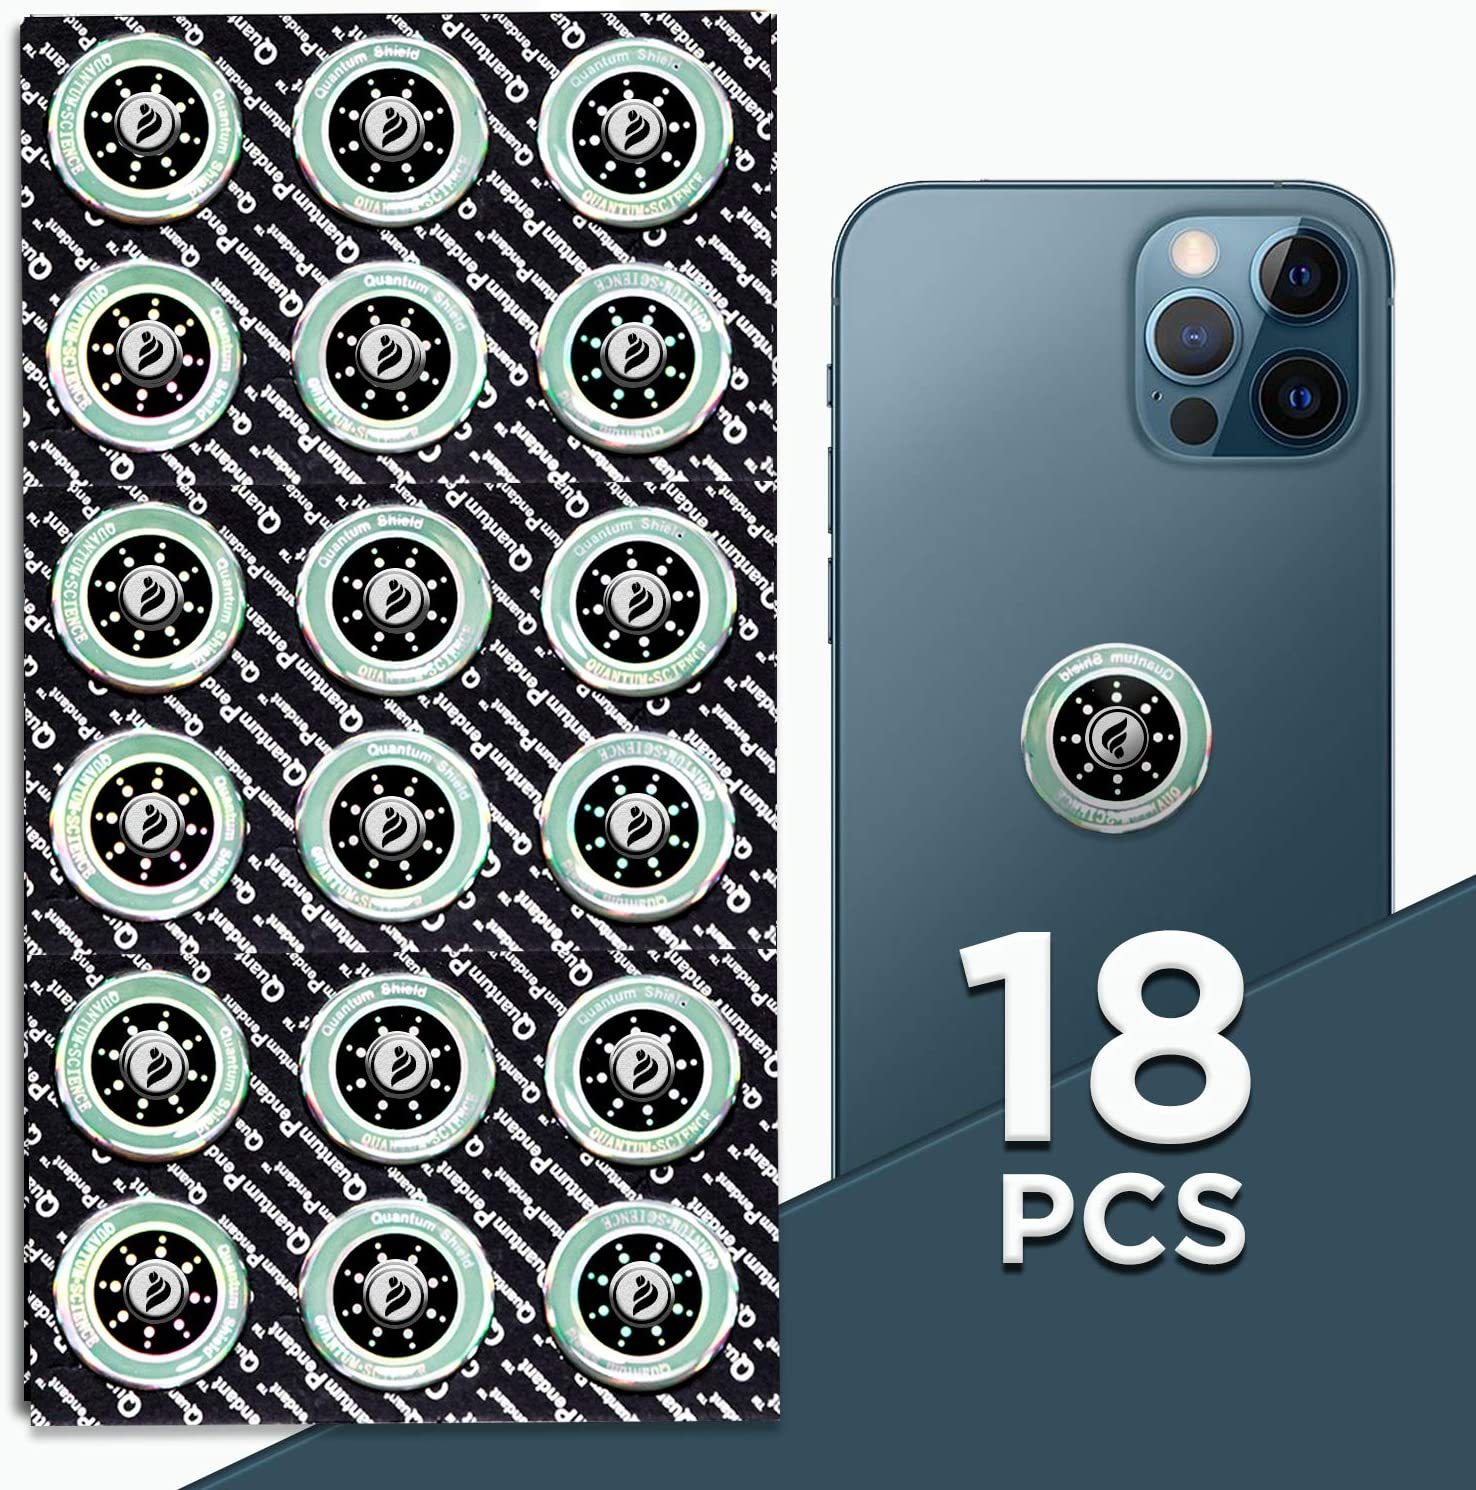 Falden   18 Pack Premium Quality Anti EMF Stickers   New Box 2021   Cell Phone - Computers EMF Shield Stickers   Anti EMR Shield   Easy to Use